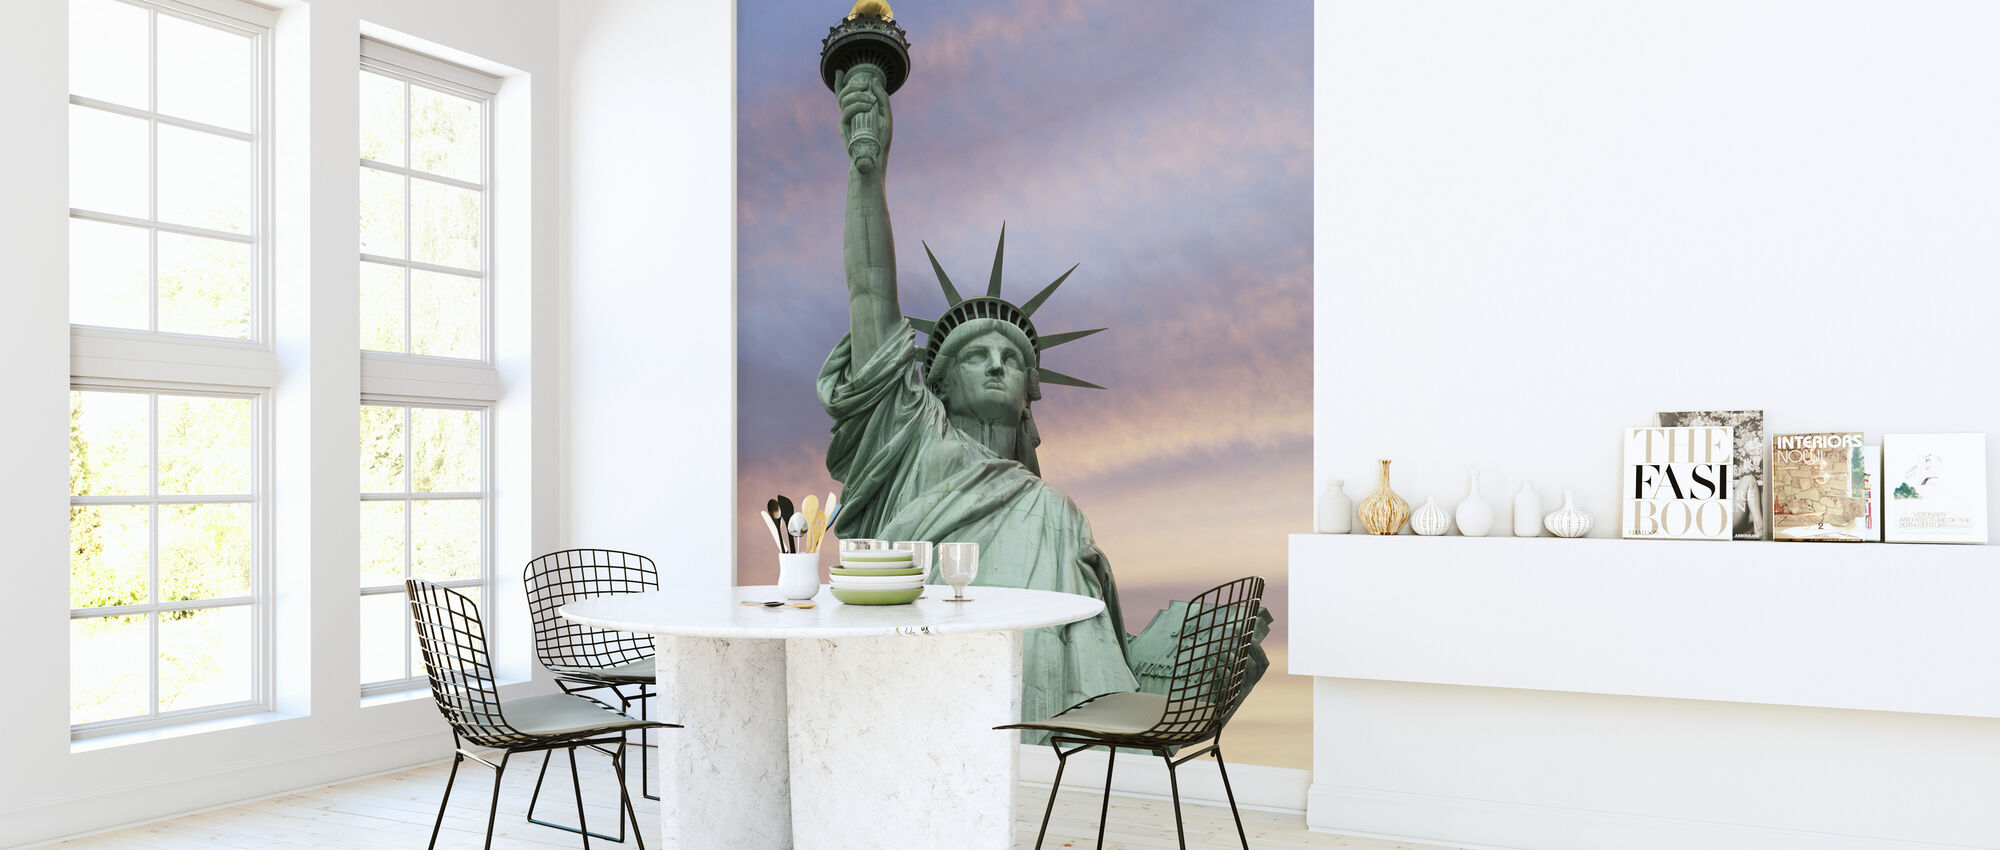 Statue of Liberty under a vivid sky - Wallpaper - Kitchen